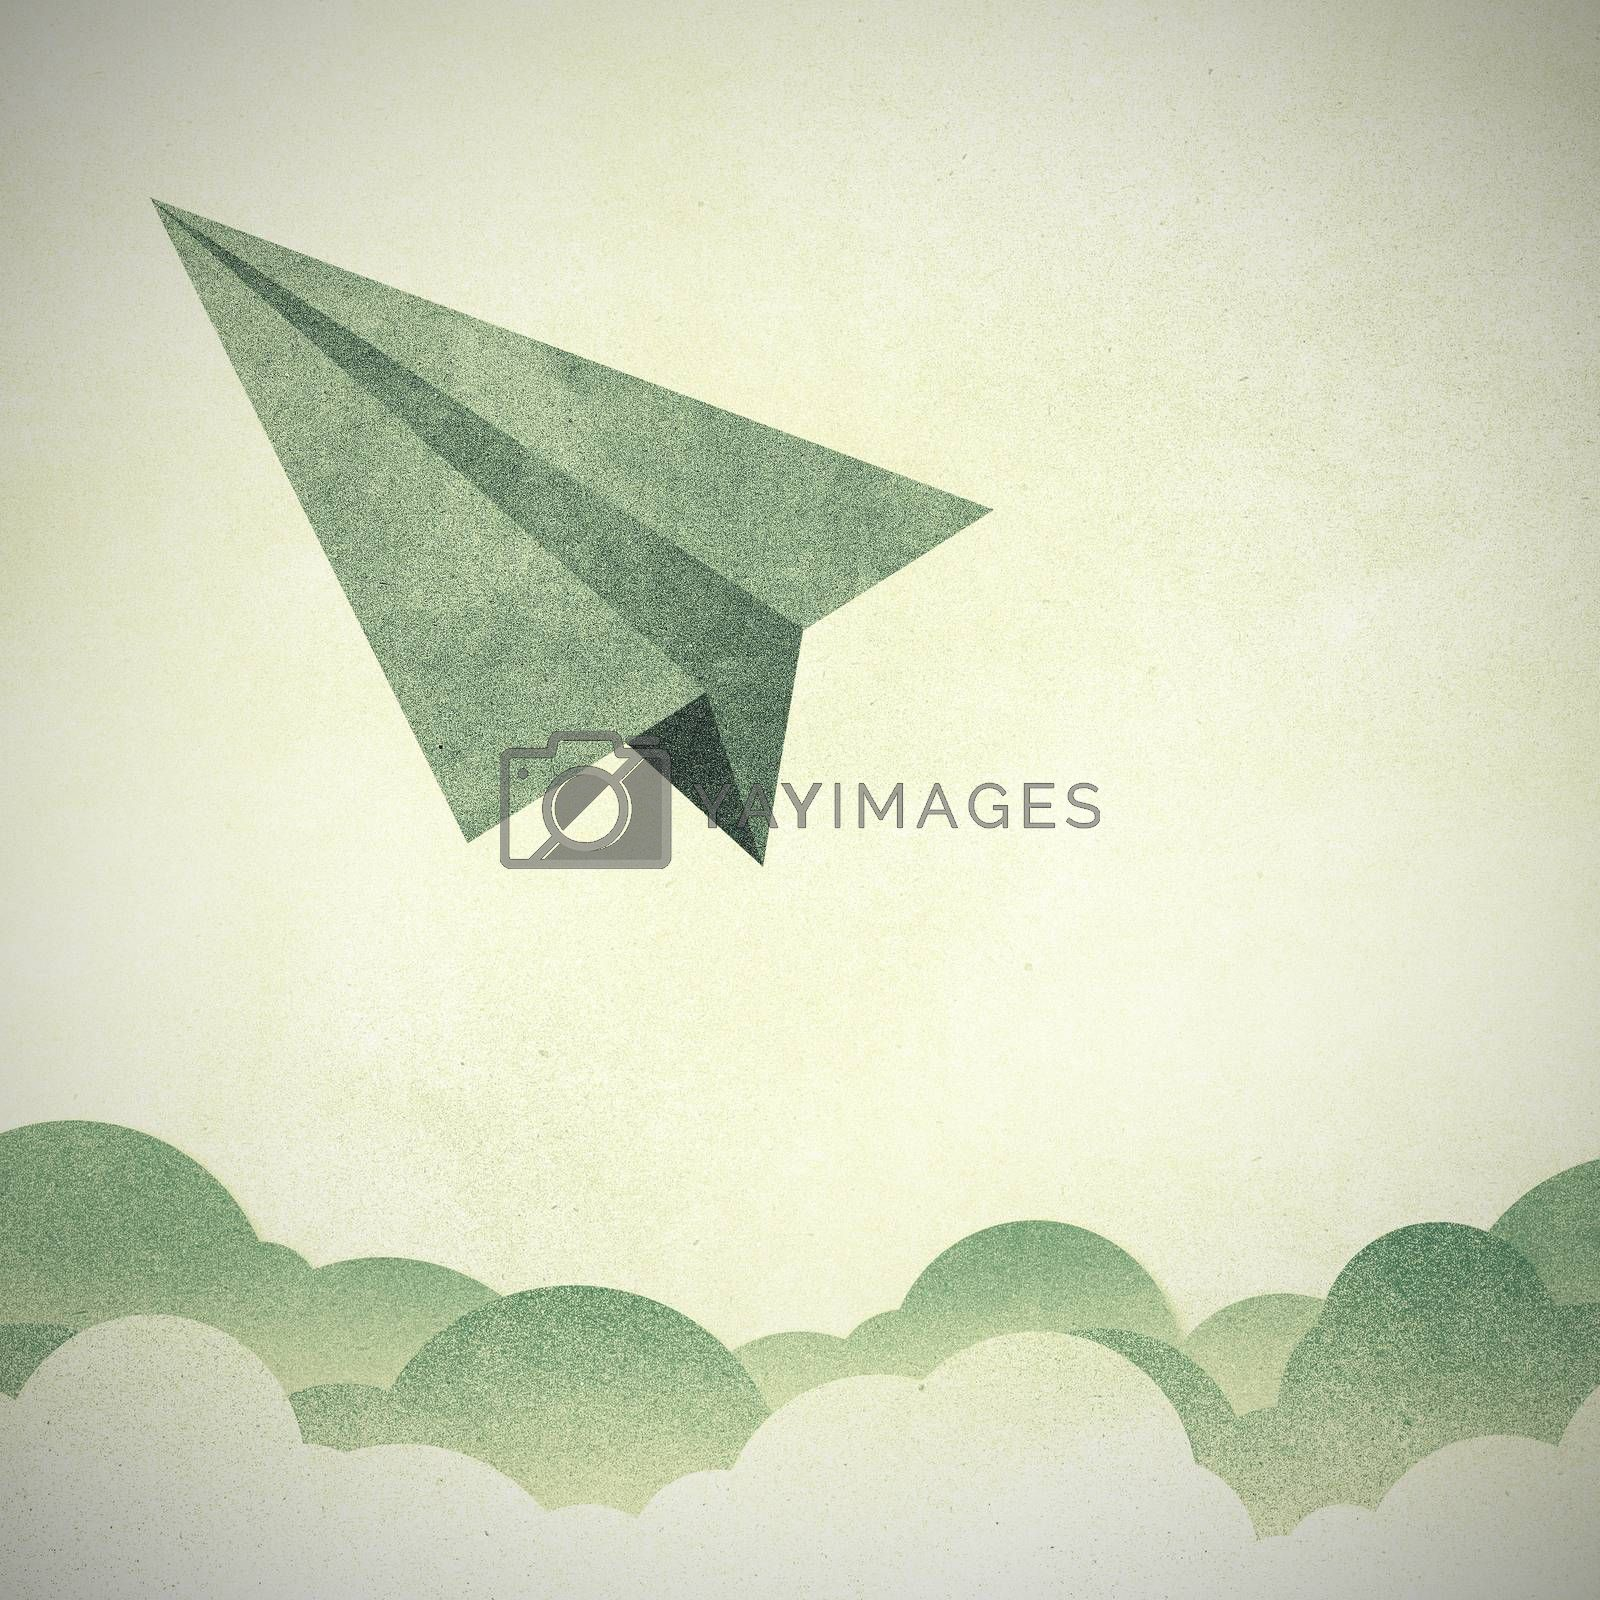 Paper Texture,Paper airplanes flying against sky and clouds by jakgree